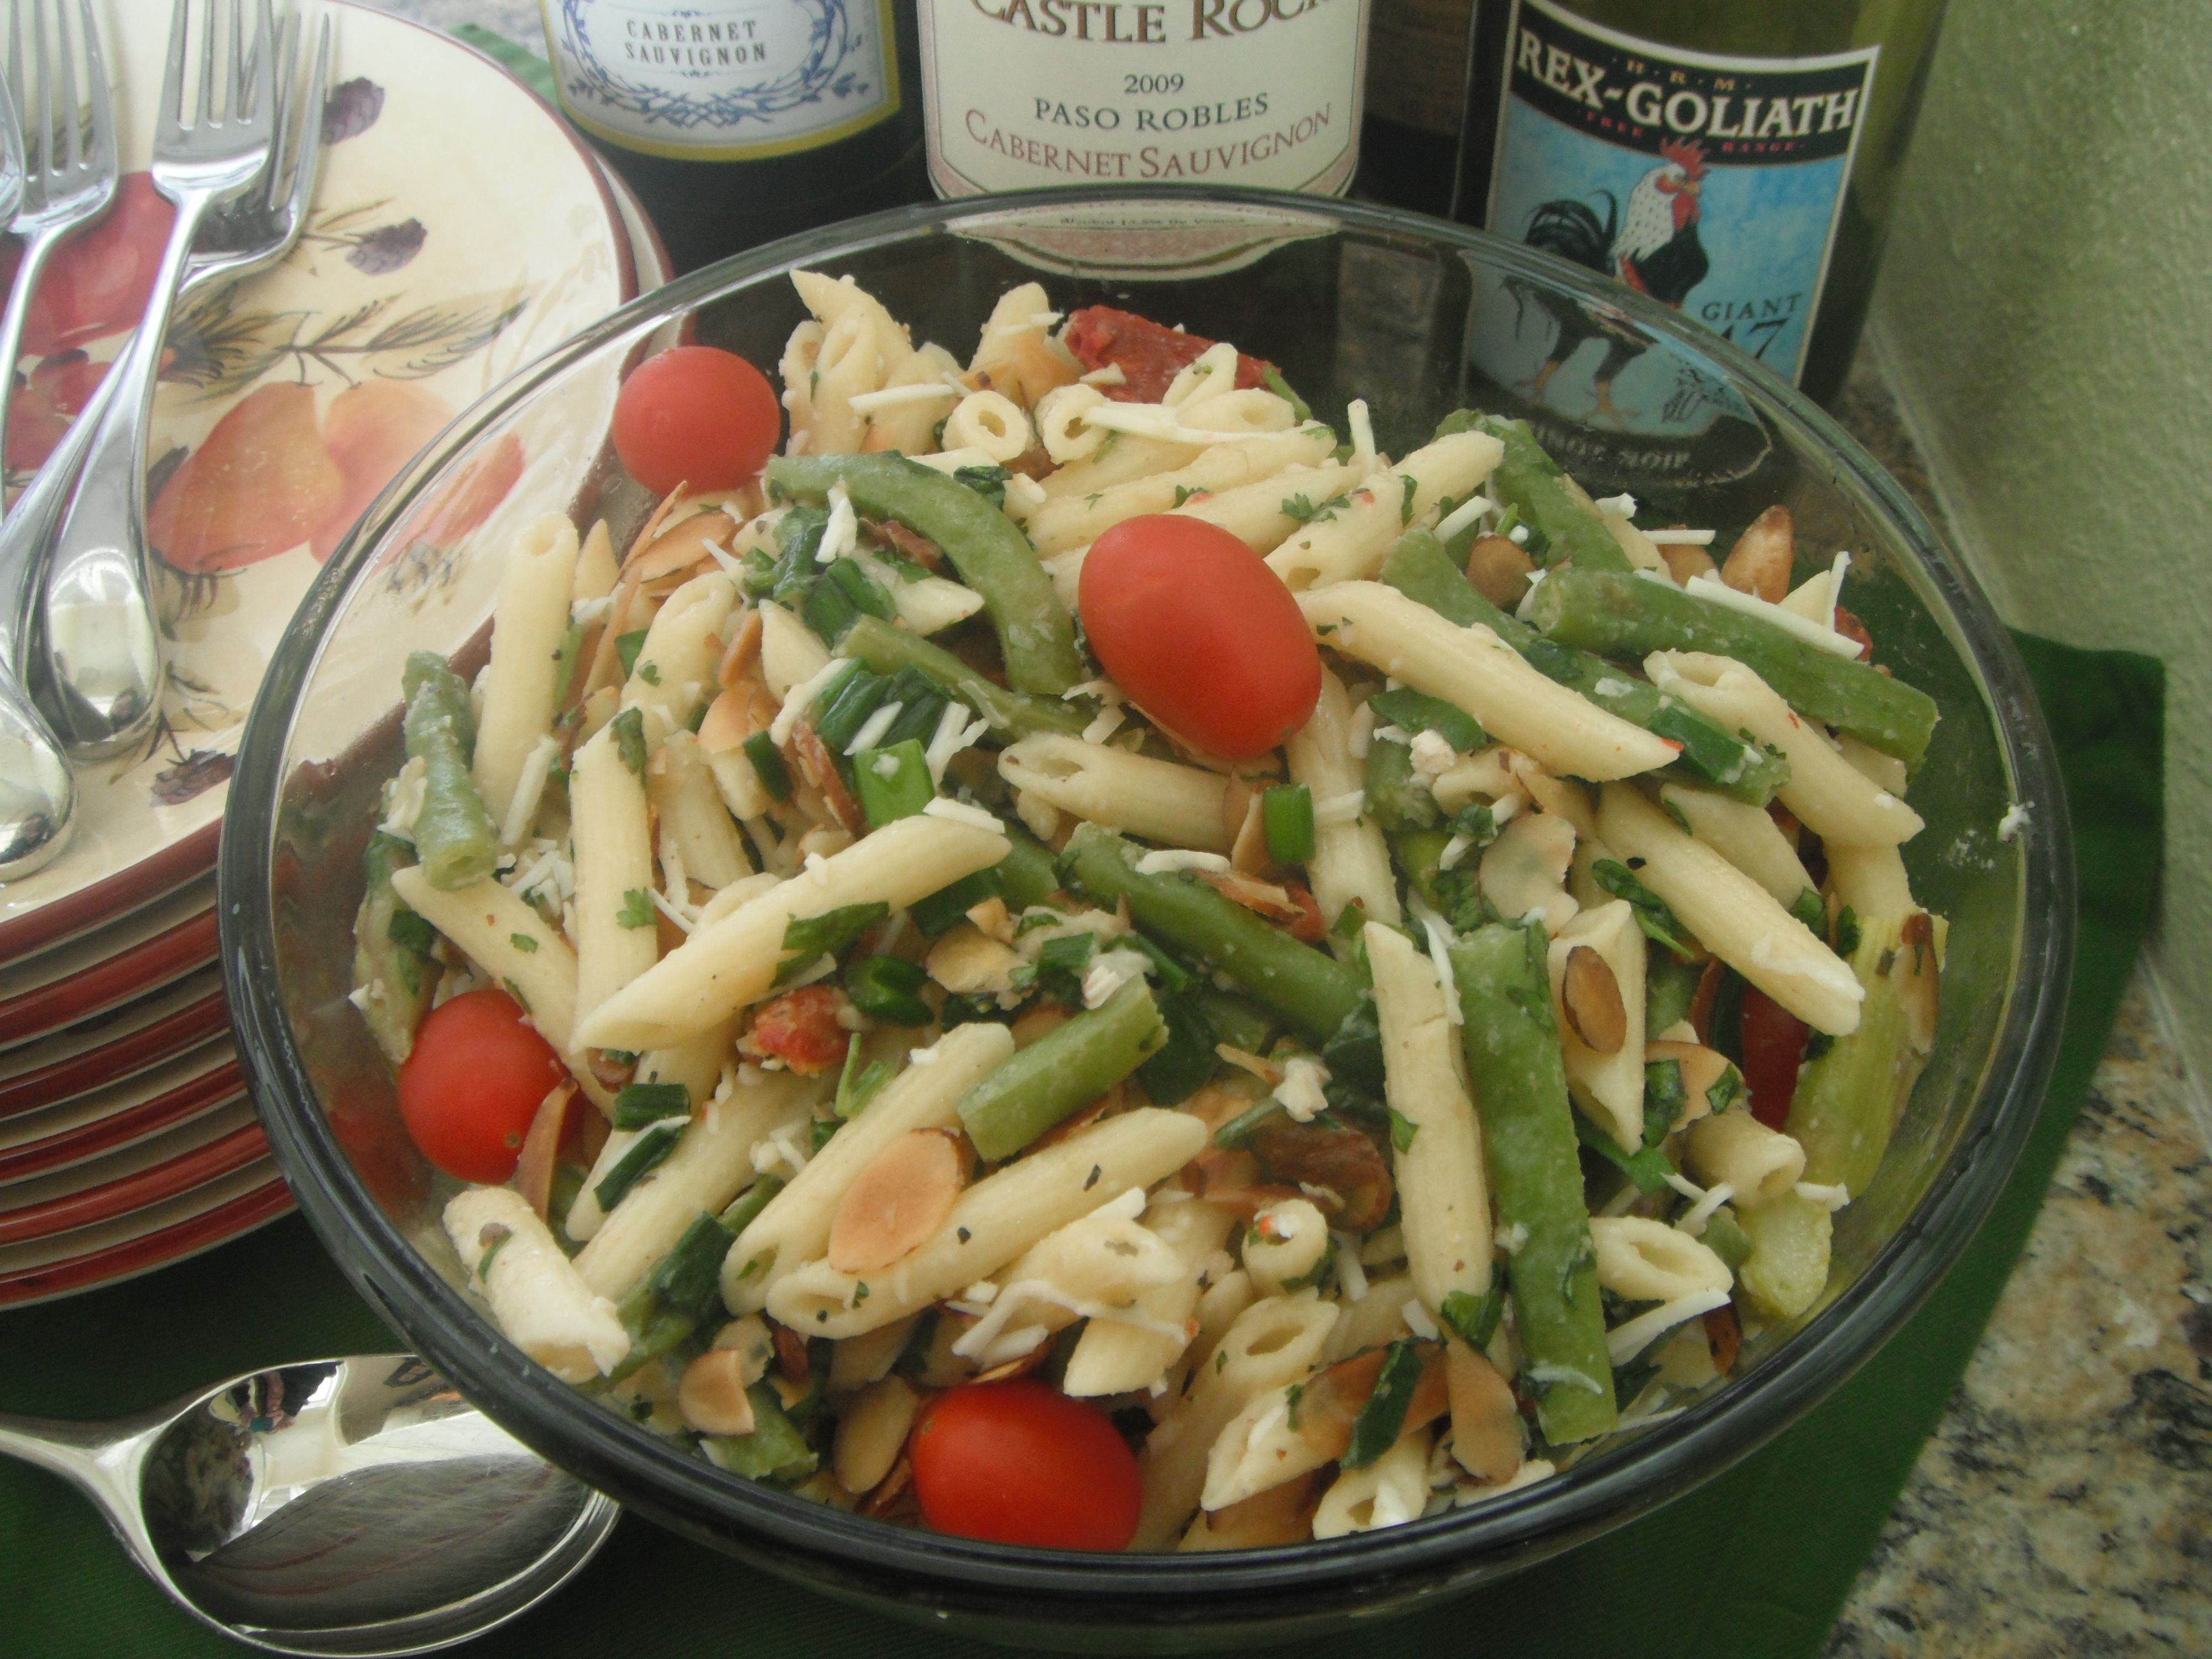 The best pasta salad recipe ever made with girard 39 s for Best summer pasta salad recipes ever